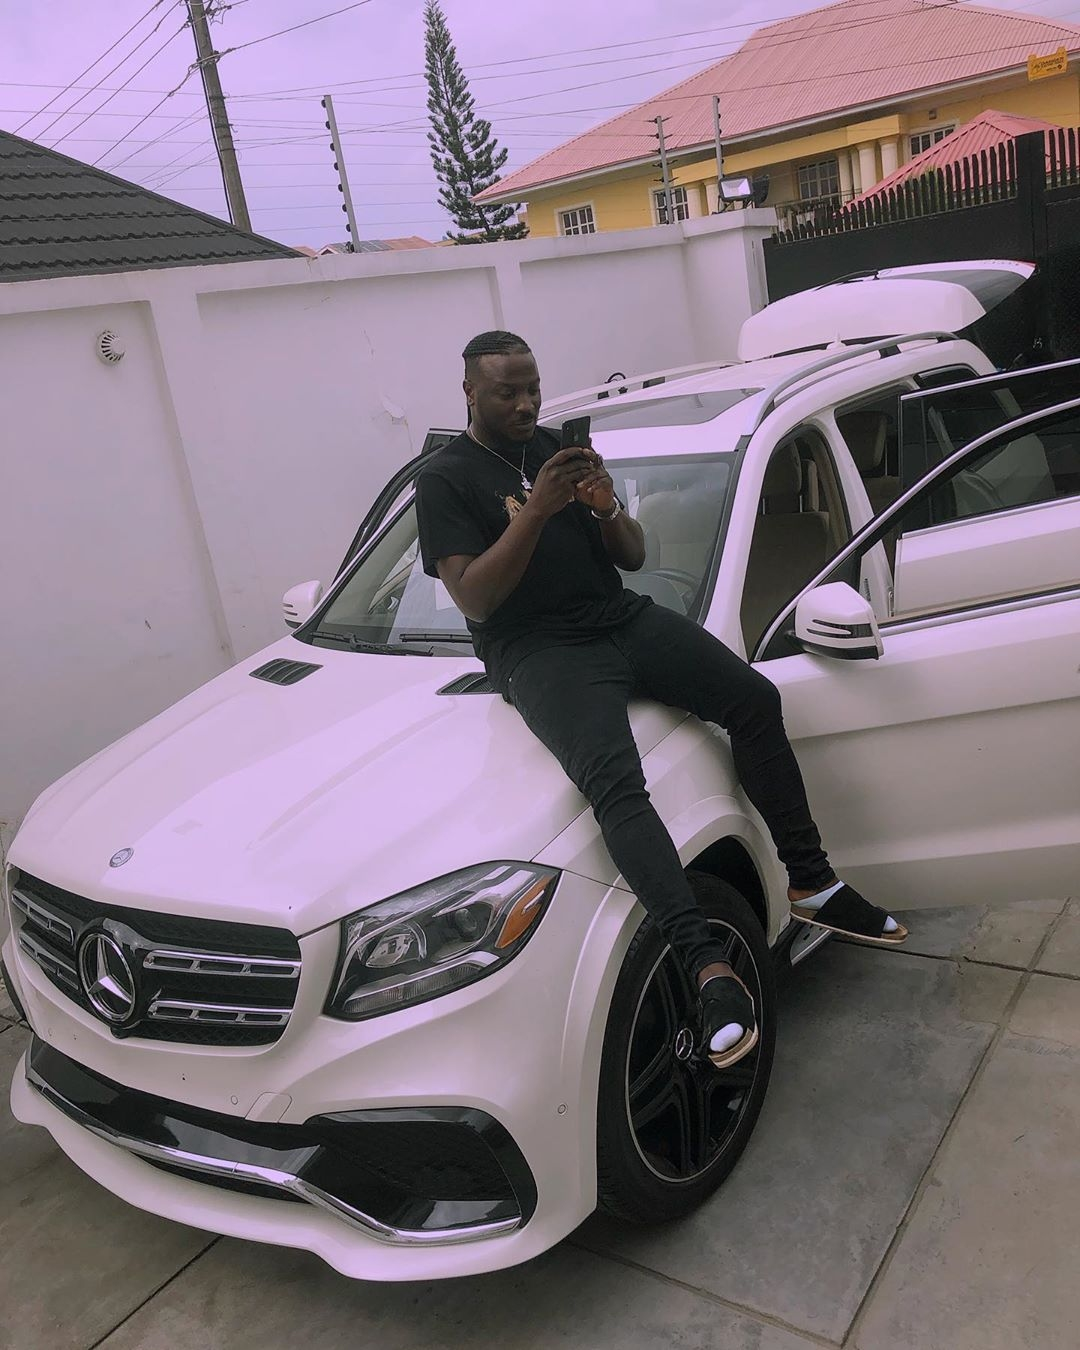 Issa New Whip! Peruzzi is Proud Owner of a Mercedes Benz